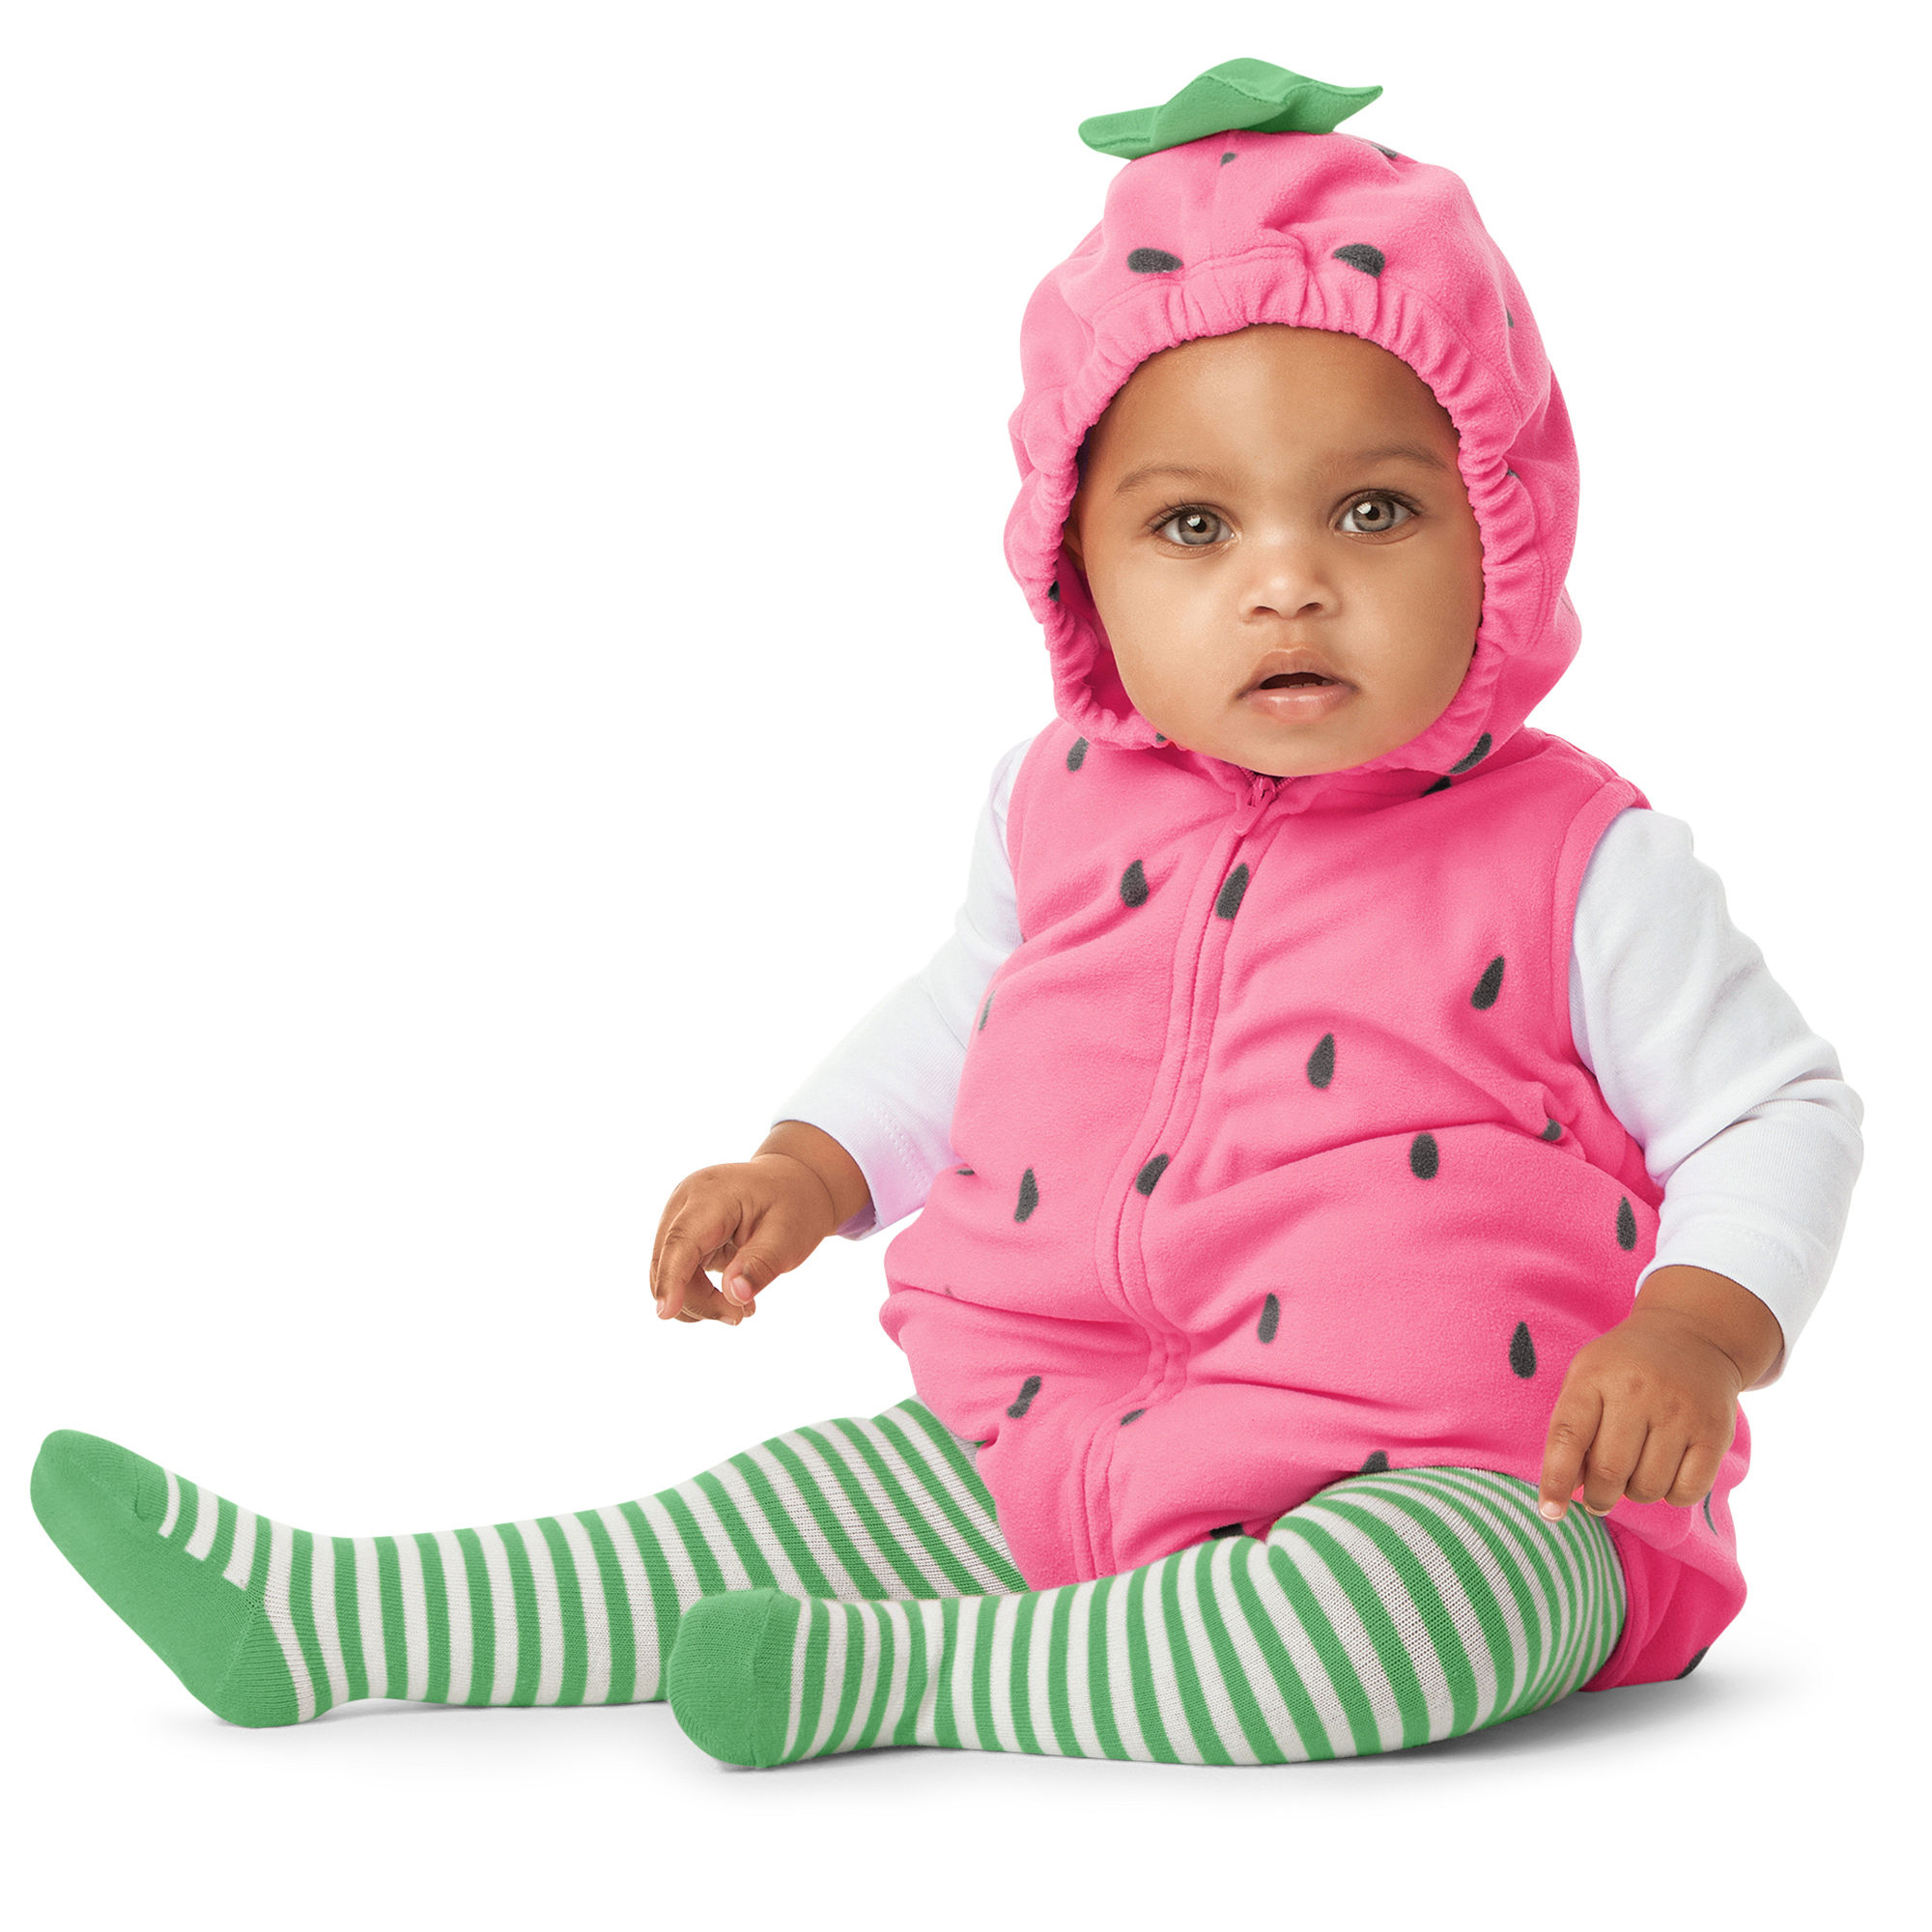 Infant Halloween Costumes 18-24 Months | Halloween Radio Site